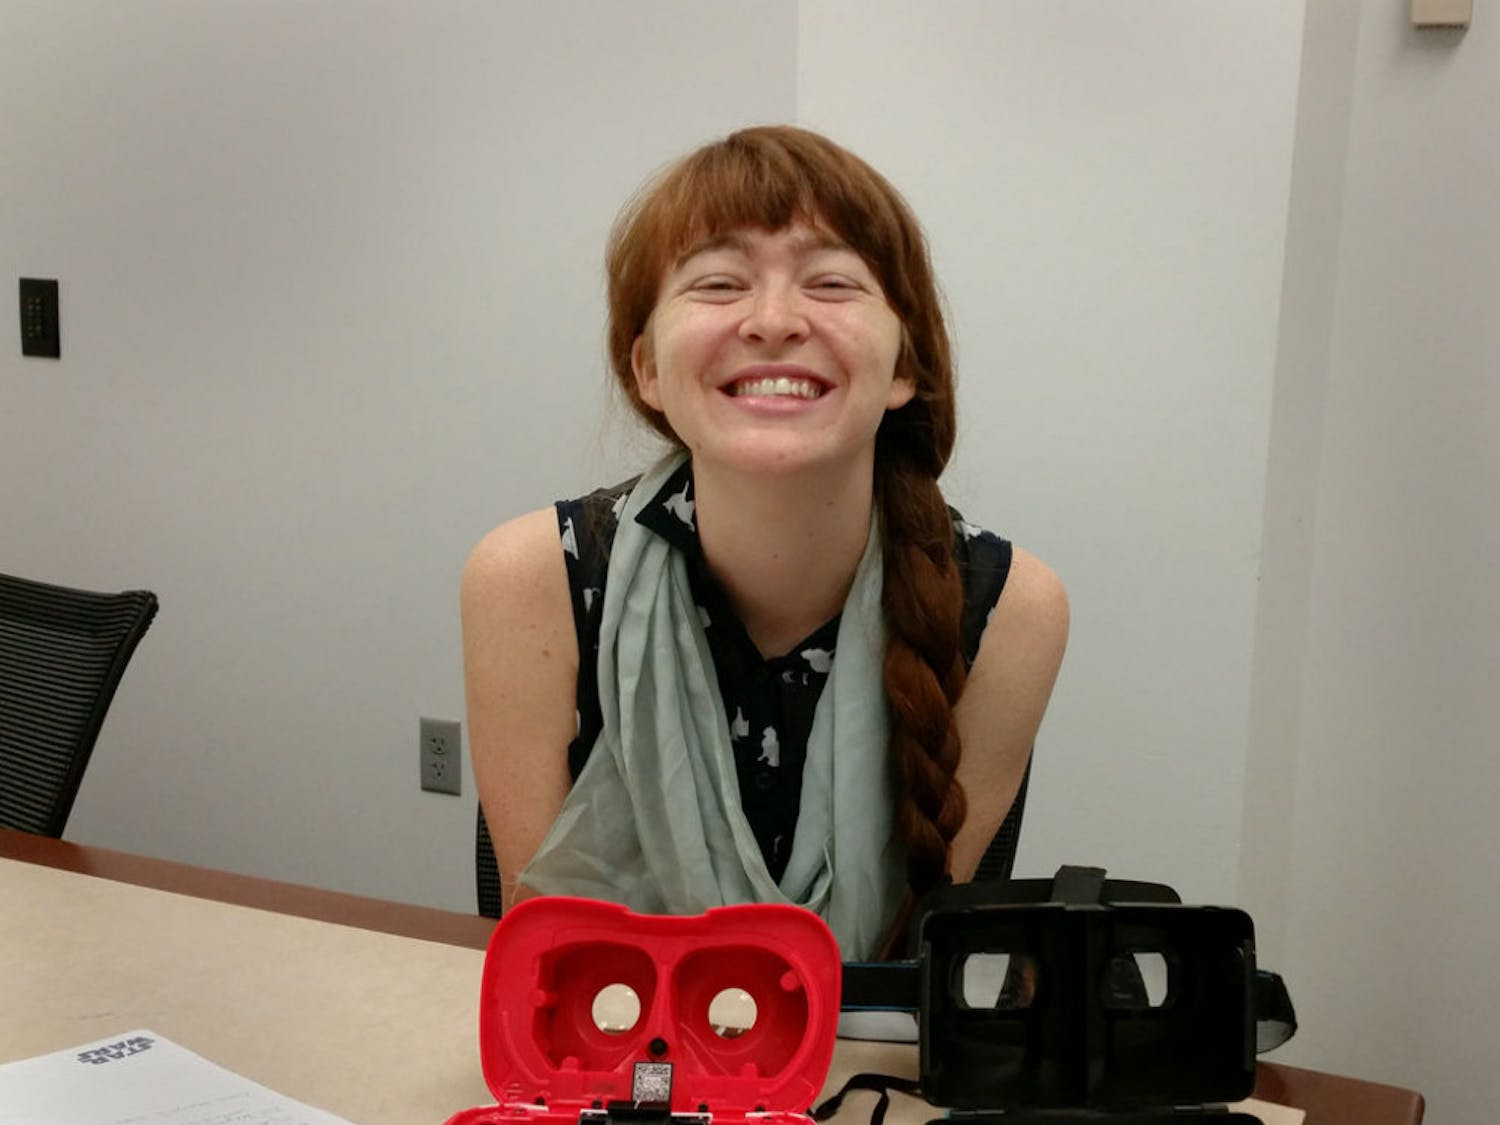 Caitlin Kearney, 23, a recent graduate of UF's Digital Arts and Sciences program, smiles for a photo with virtual reality headsets, which are used to play the smartphone puzzle game Newton's Dream.